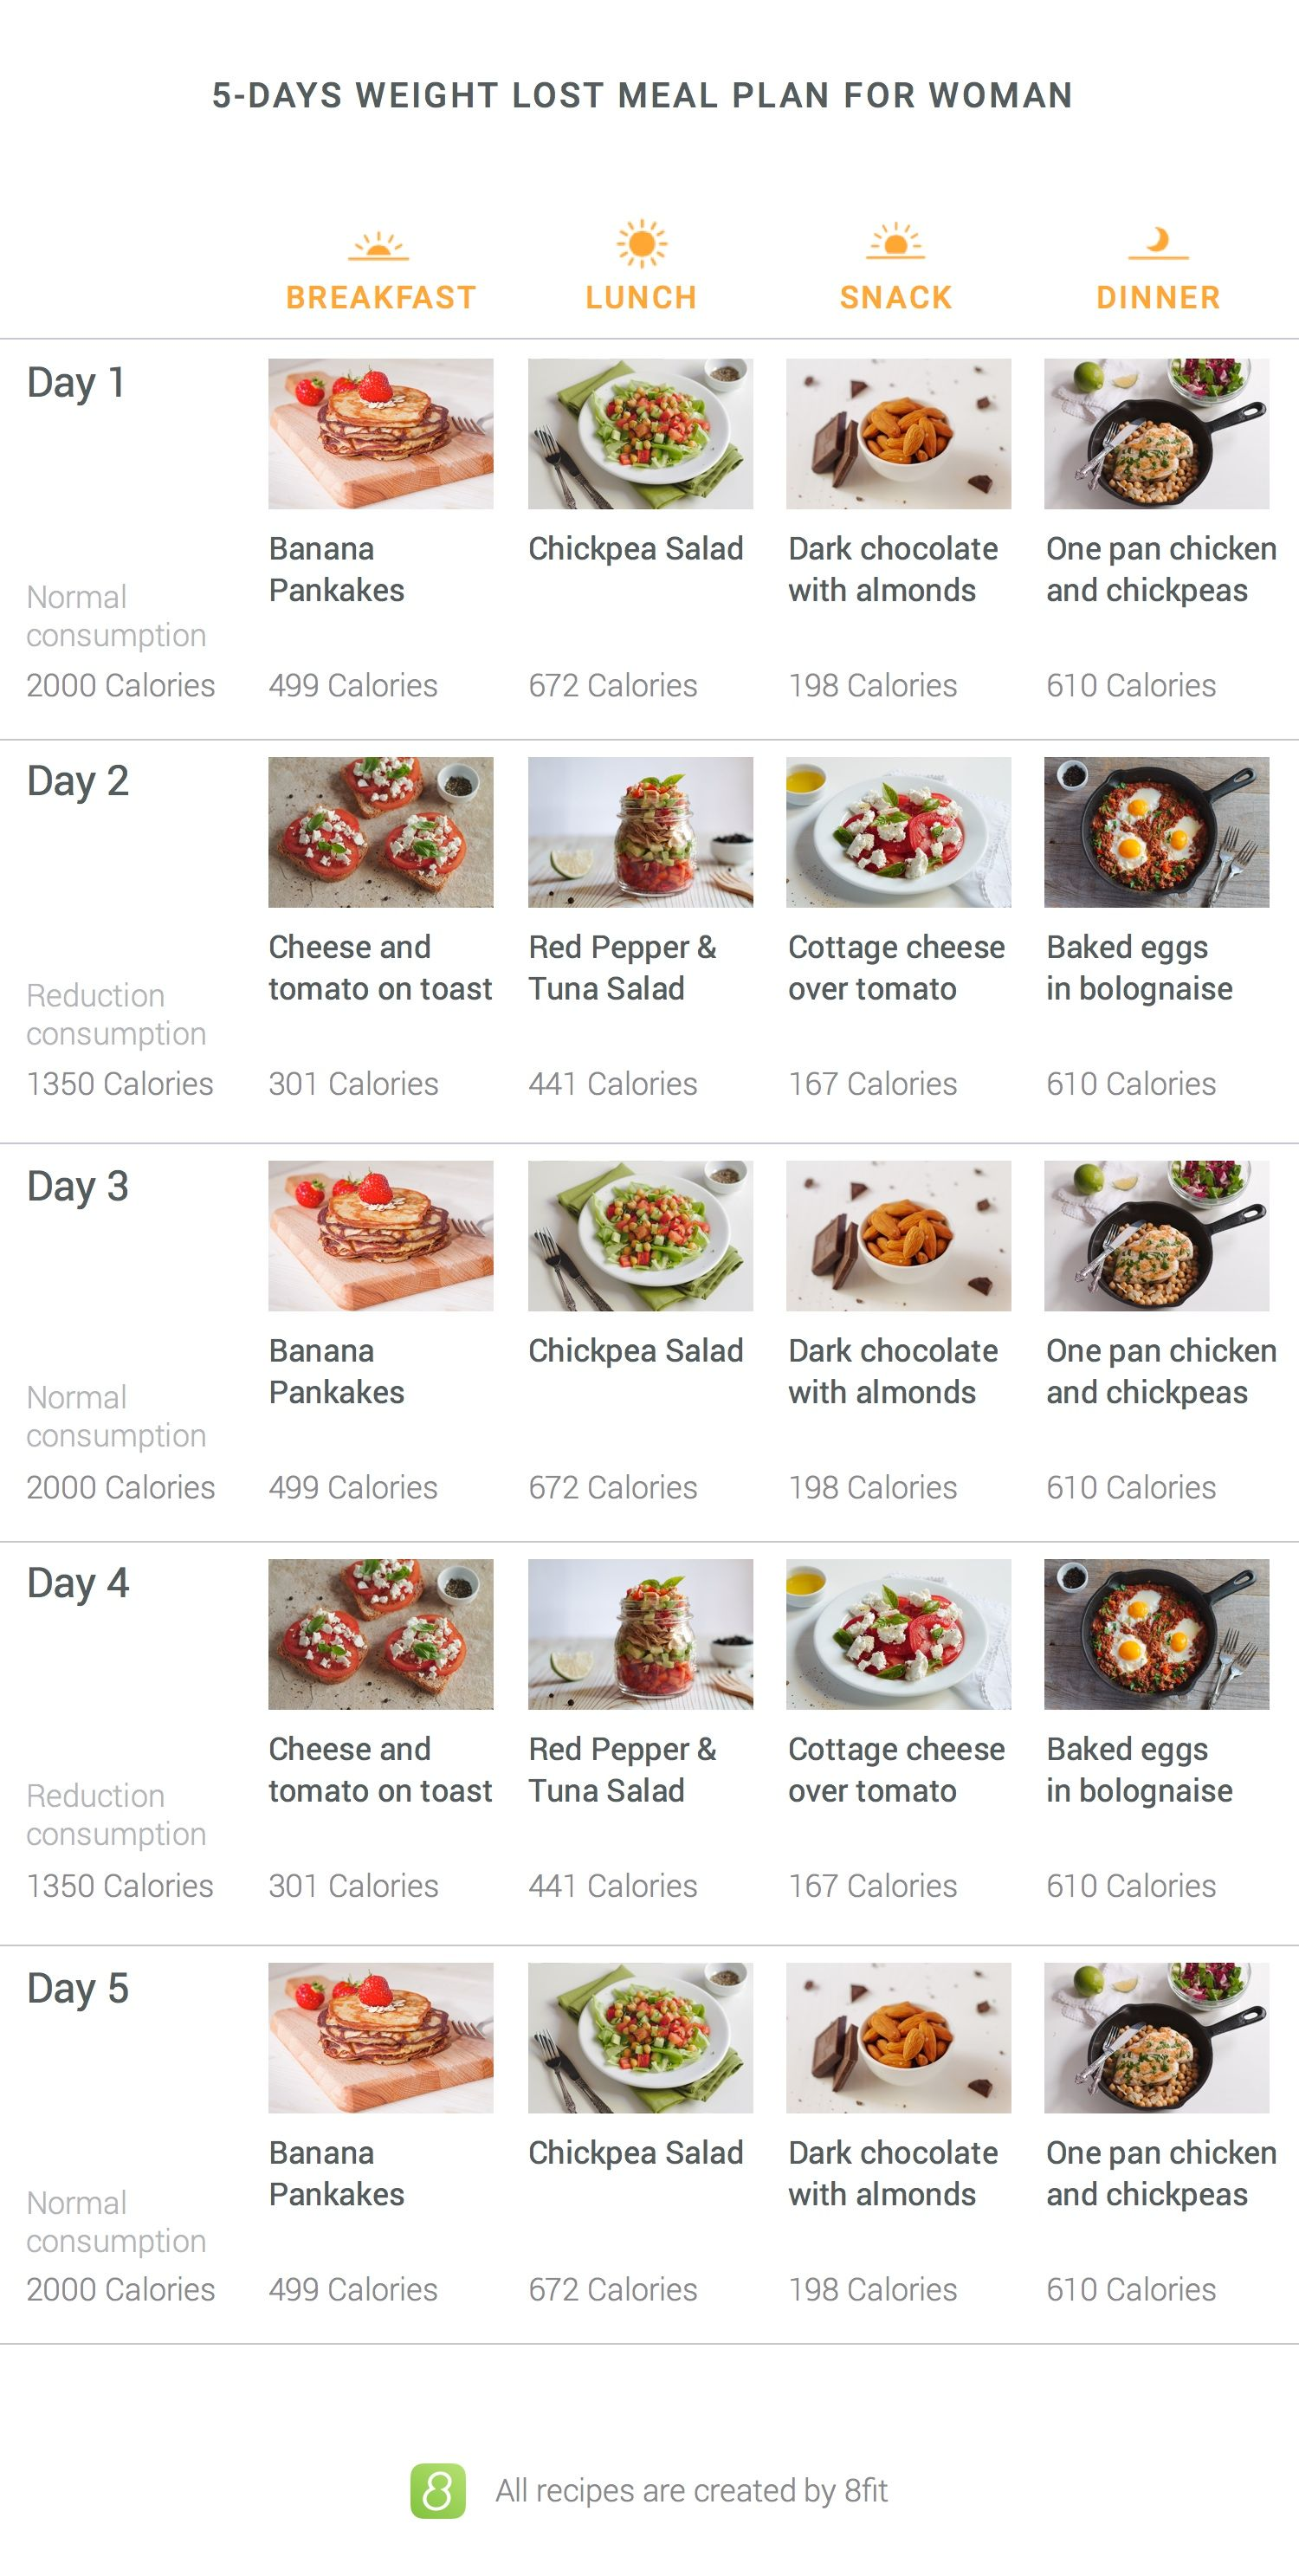 What can't you eat in a five-day diabetic meal plan?